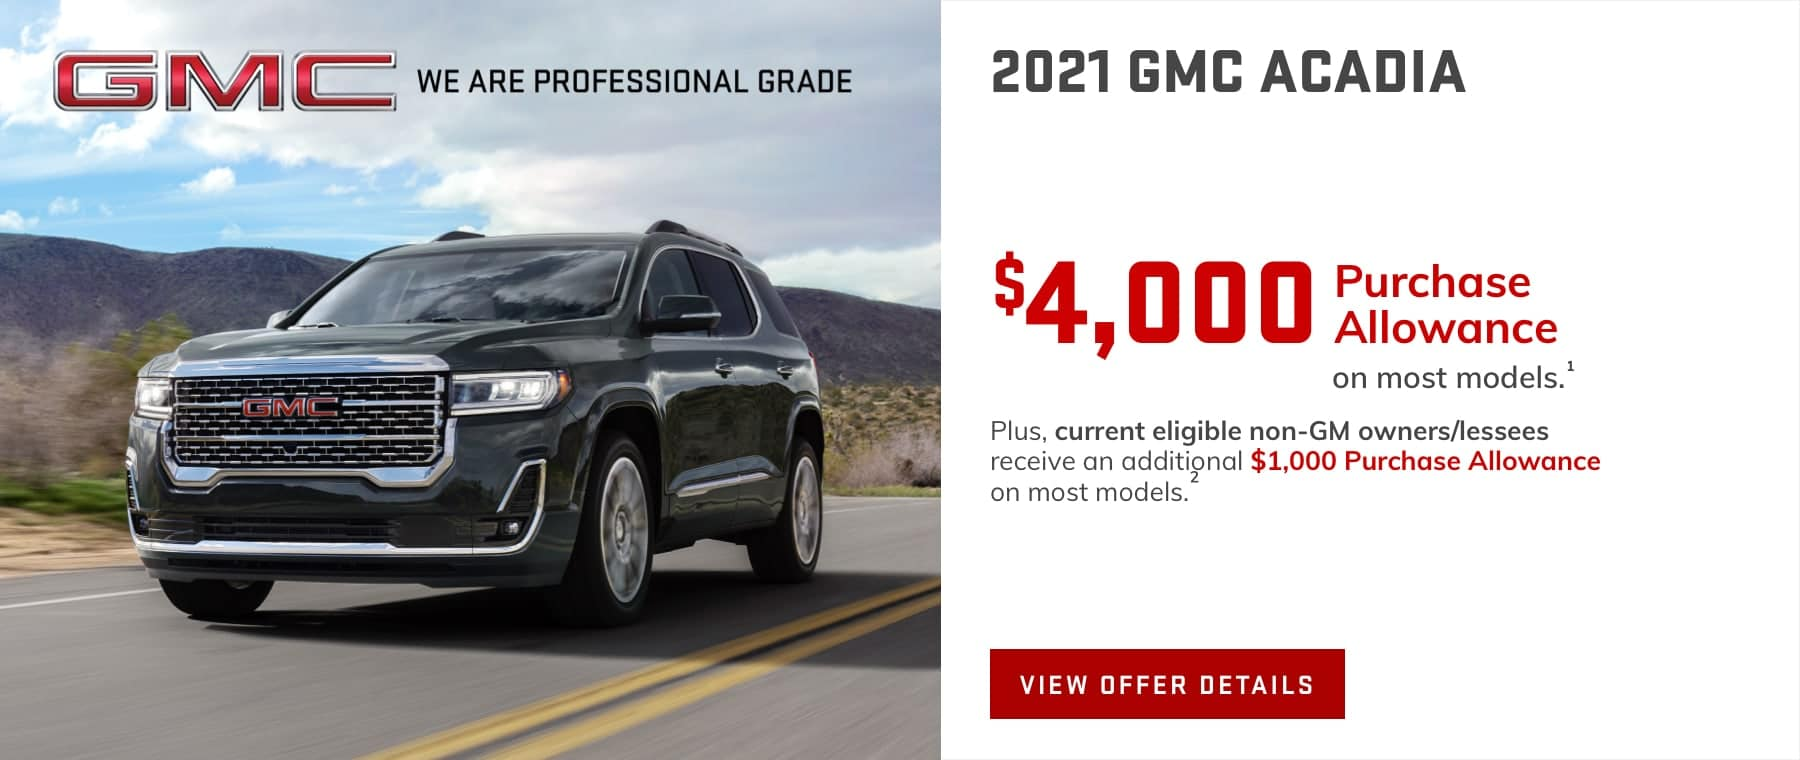 $4,000 Purchase Allowance on most models.1 Plus, current eligible non-GM owners/lessees receive an additional $1,000 Purchase Allowance on most models.